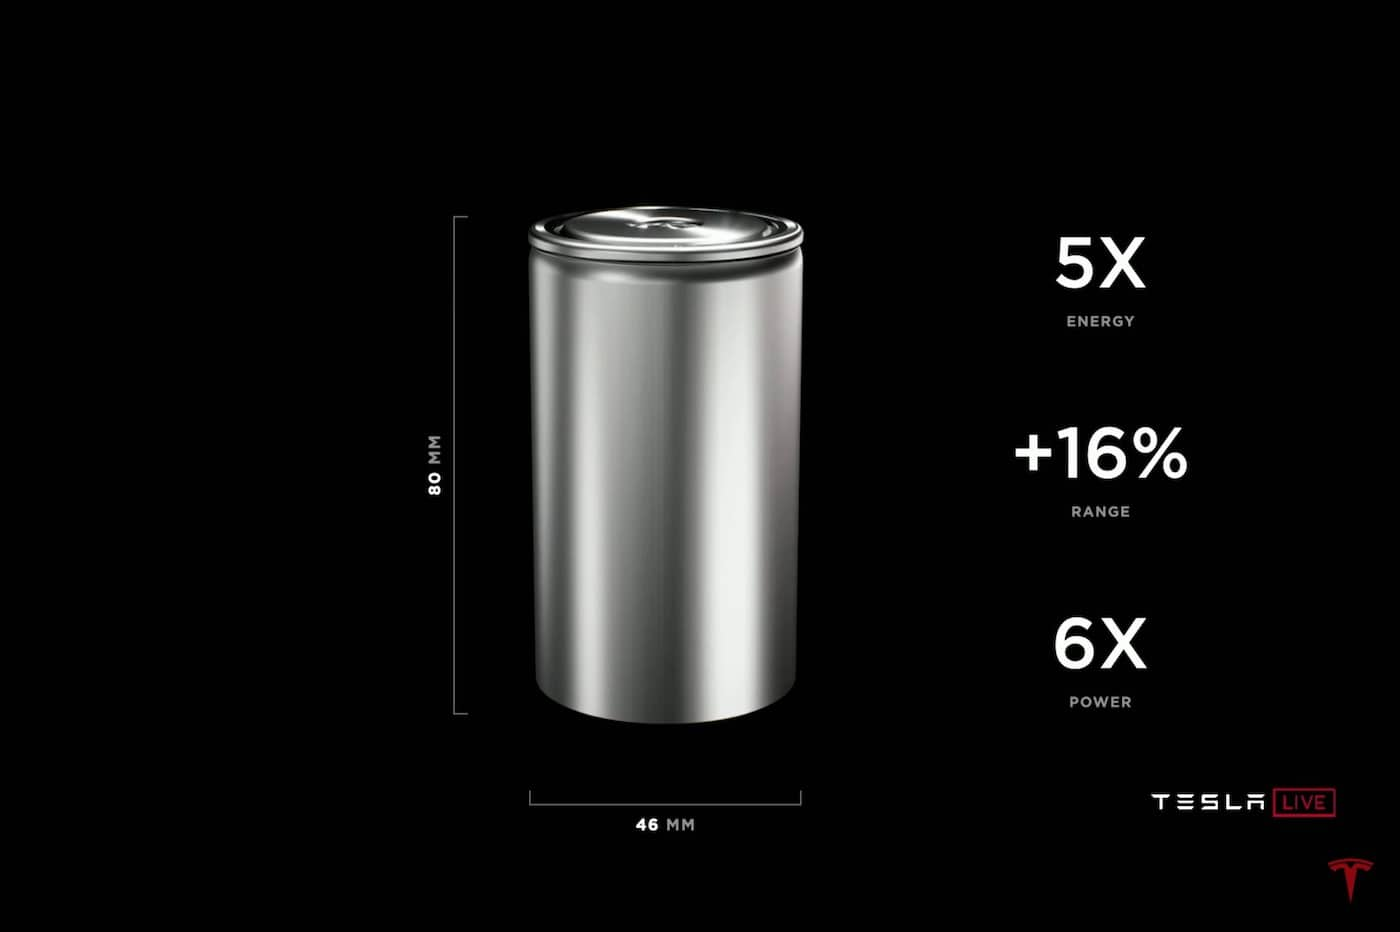 Tesla batteries & celulles